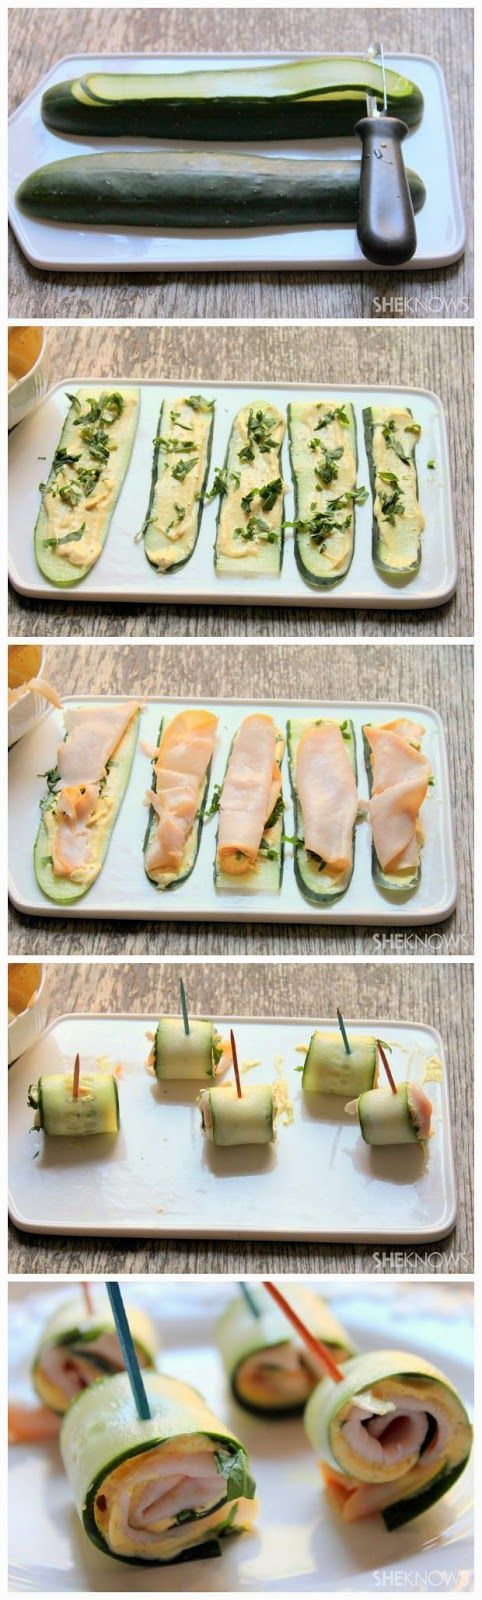 Cucumber roll-ups with hummus and turkey...great lunch idea for summer.